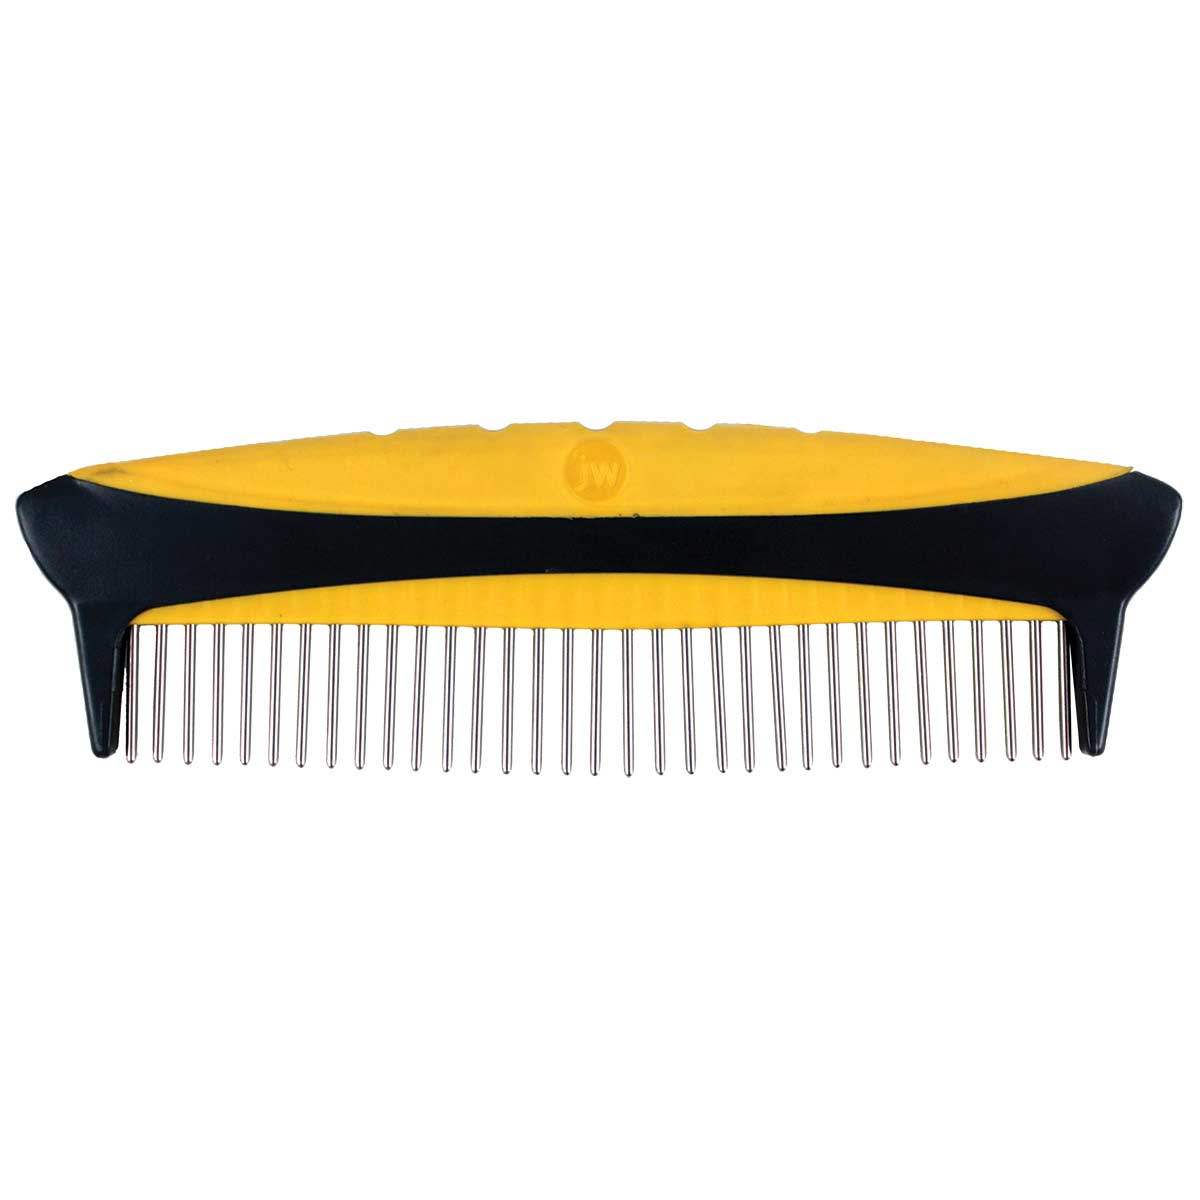 JW Rotating Tooth 8 inch Comfort Comb - Fine and Coarse